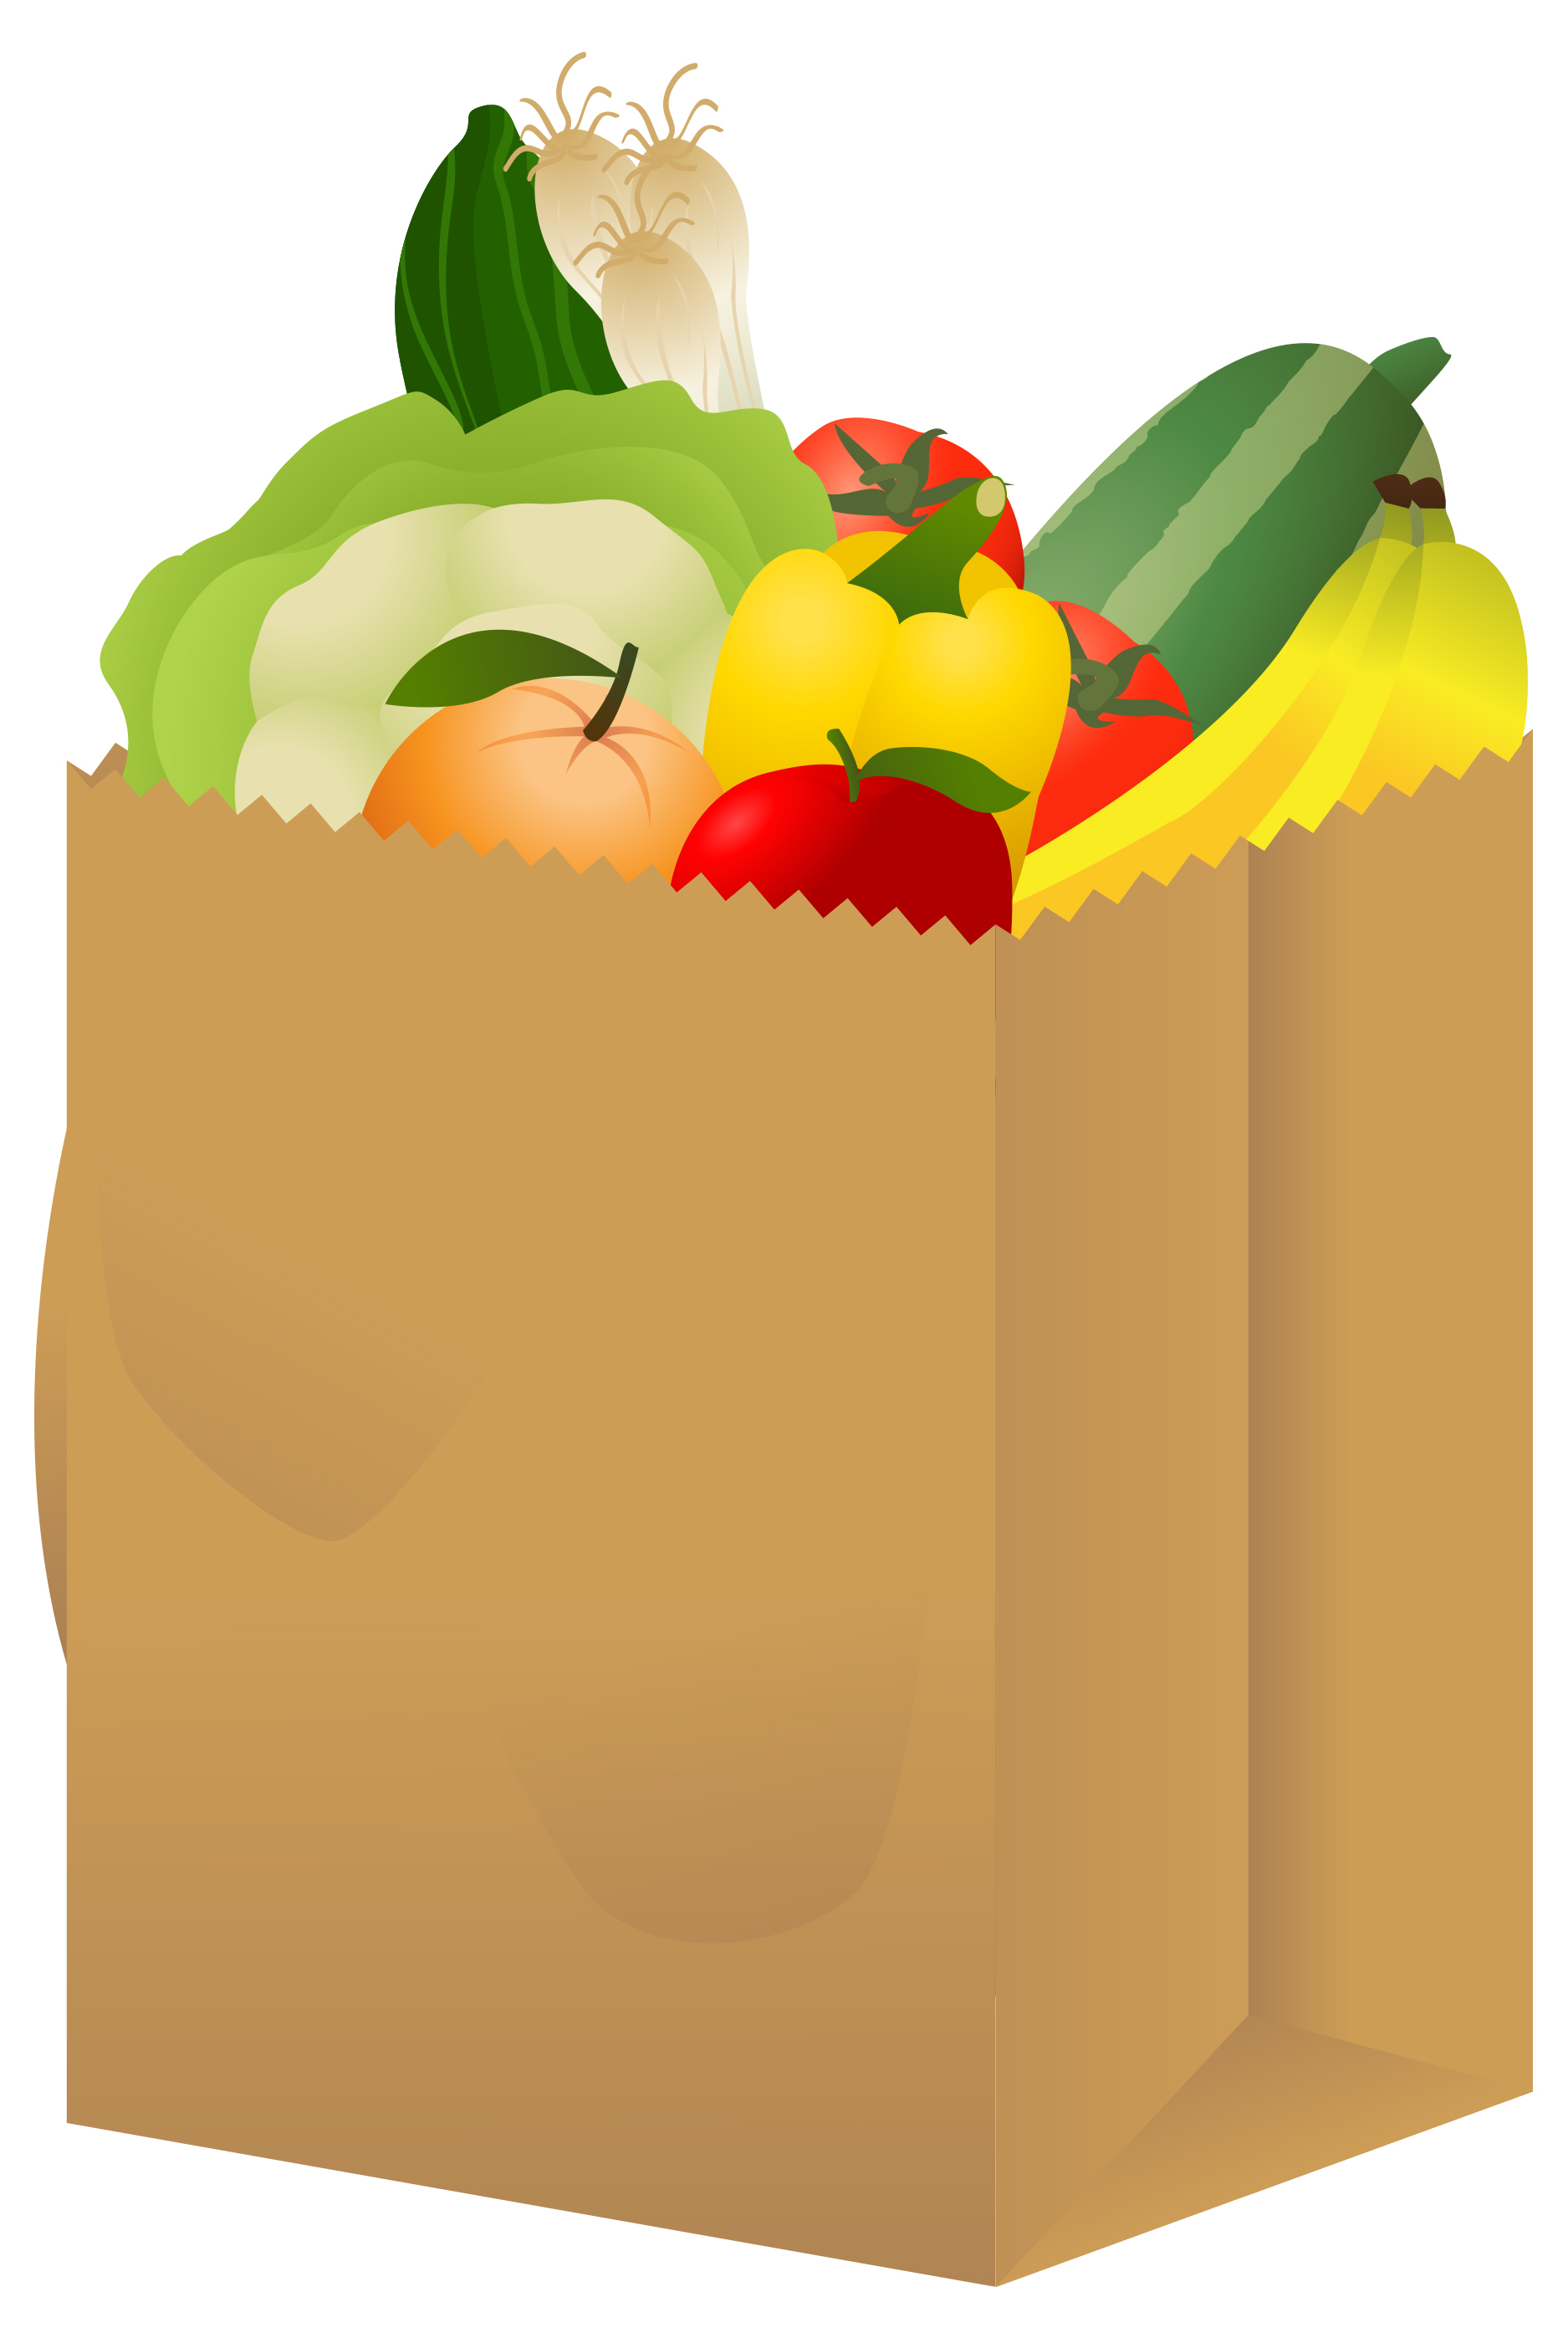 View Grocery Bag Jpg Clipart Free Nutrition And Healthy Food Clipart